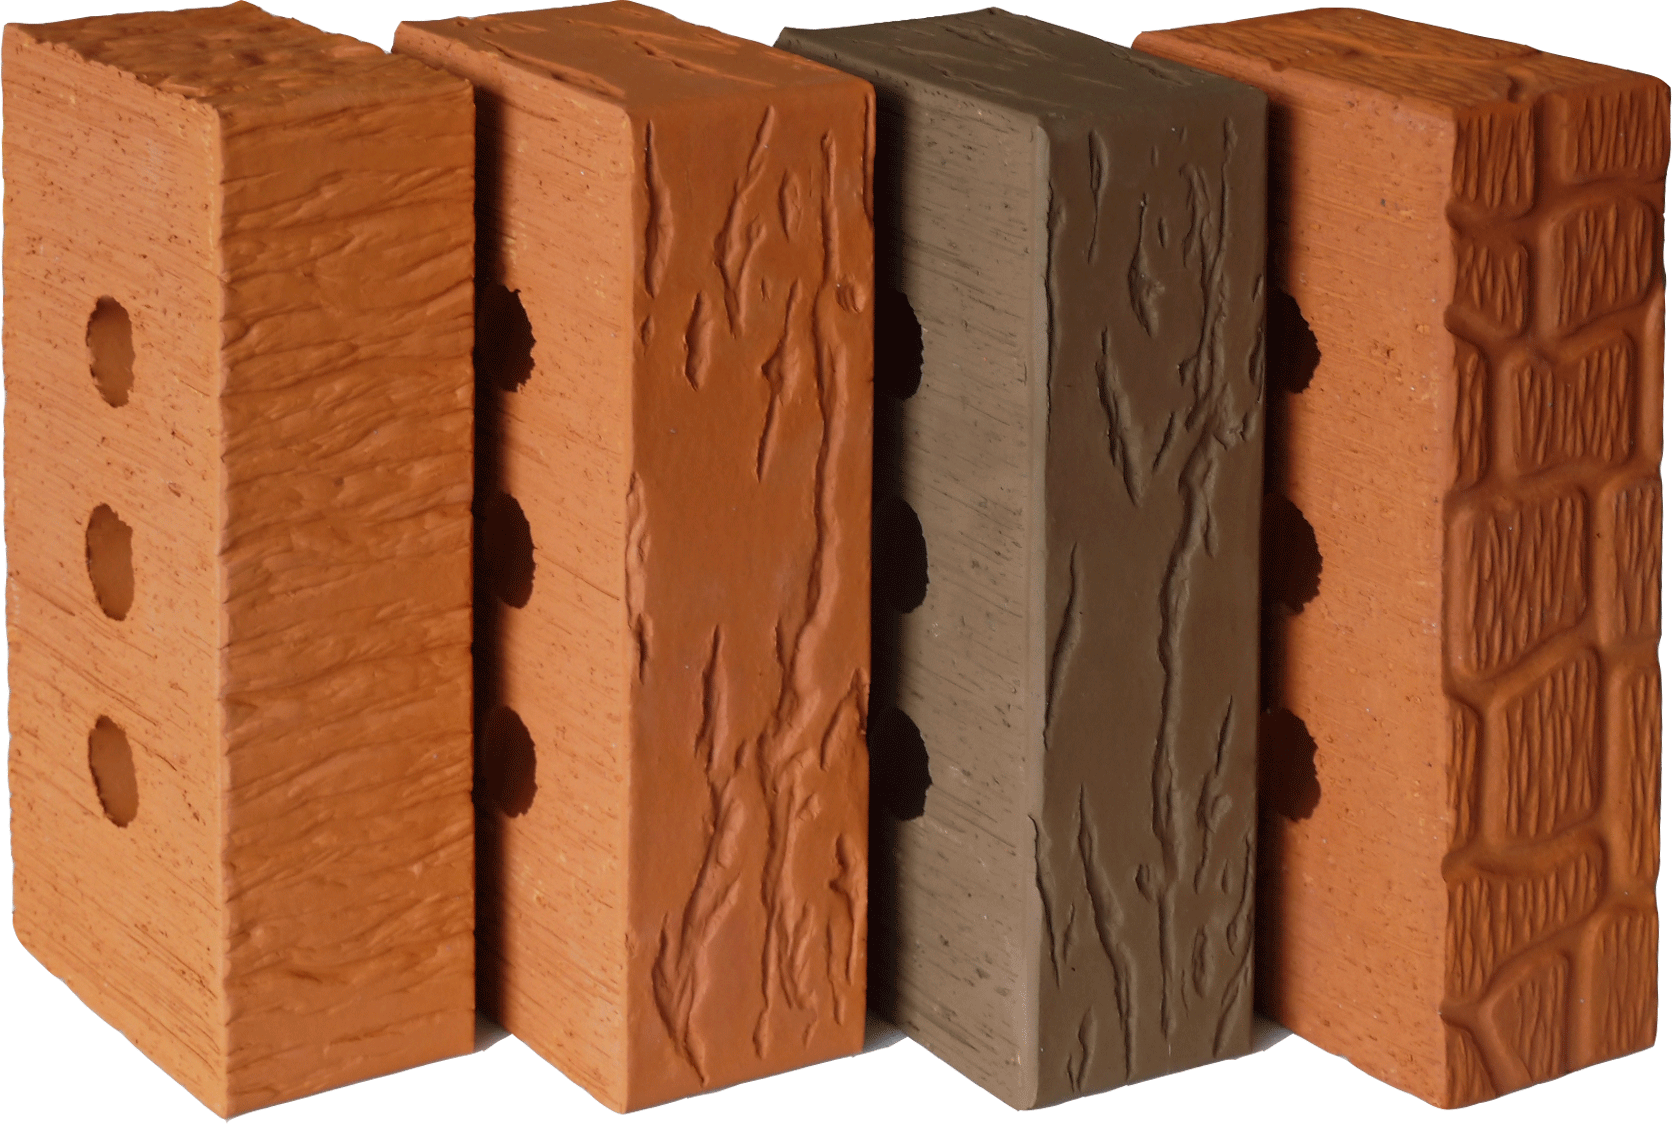 Brick PNG image, free picture download.